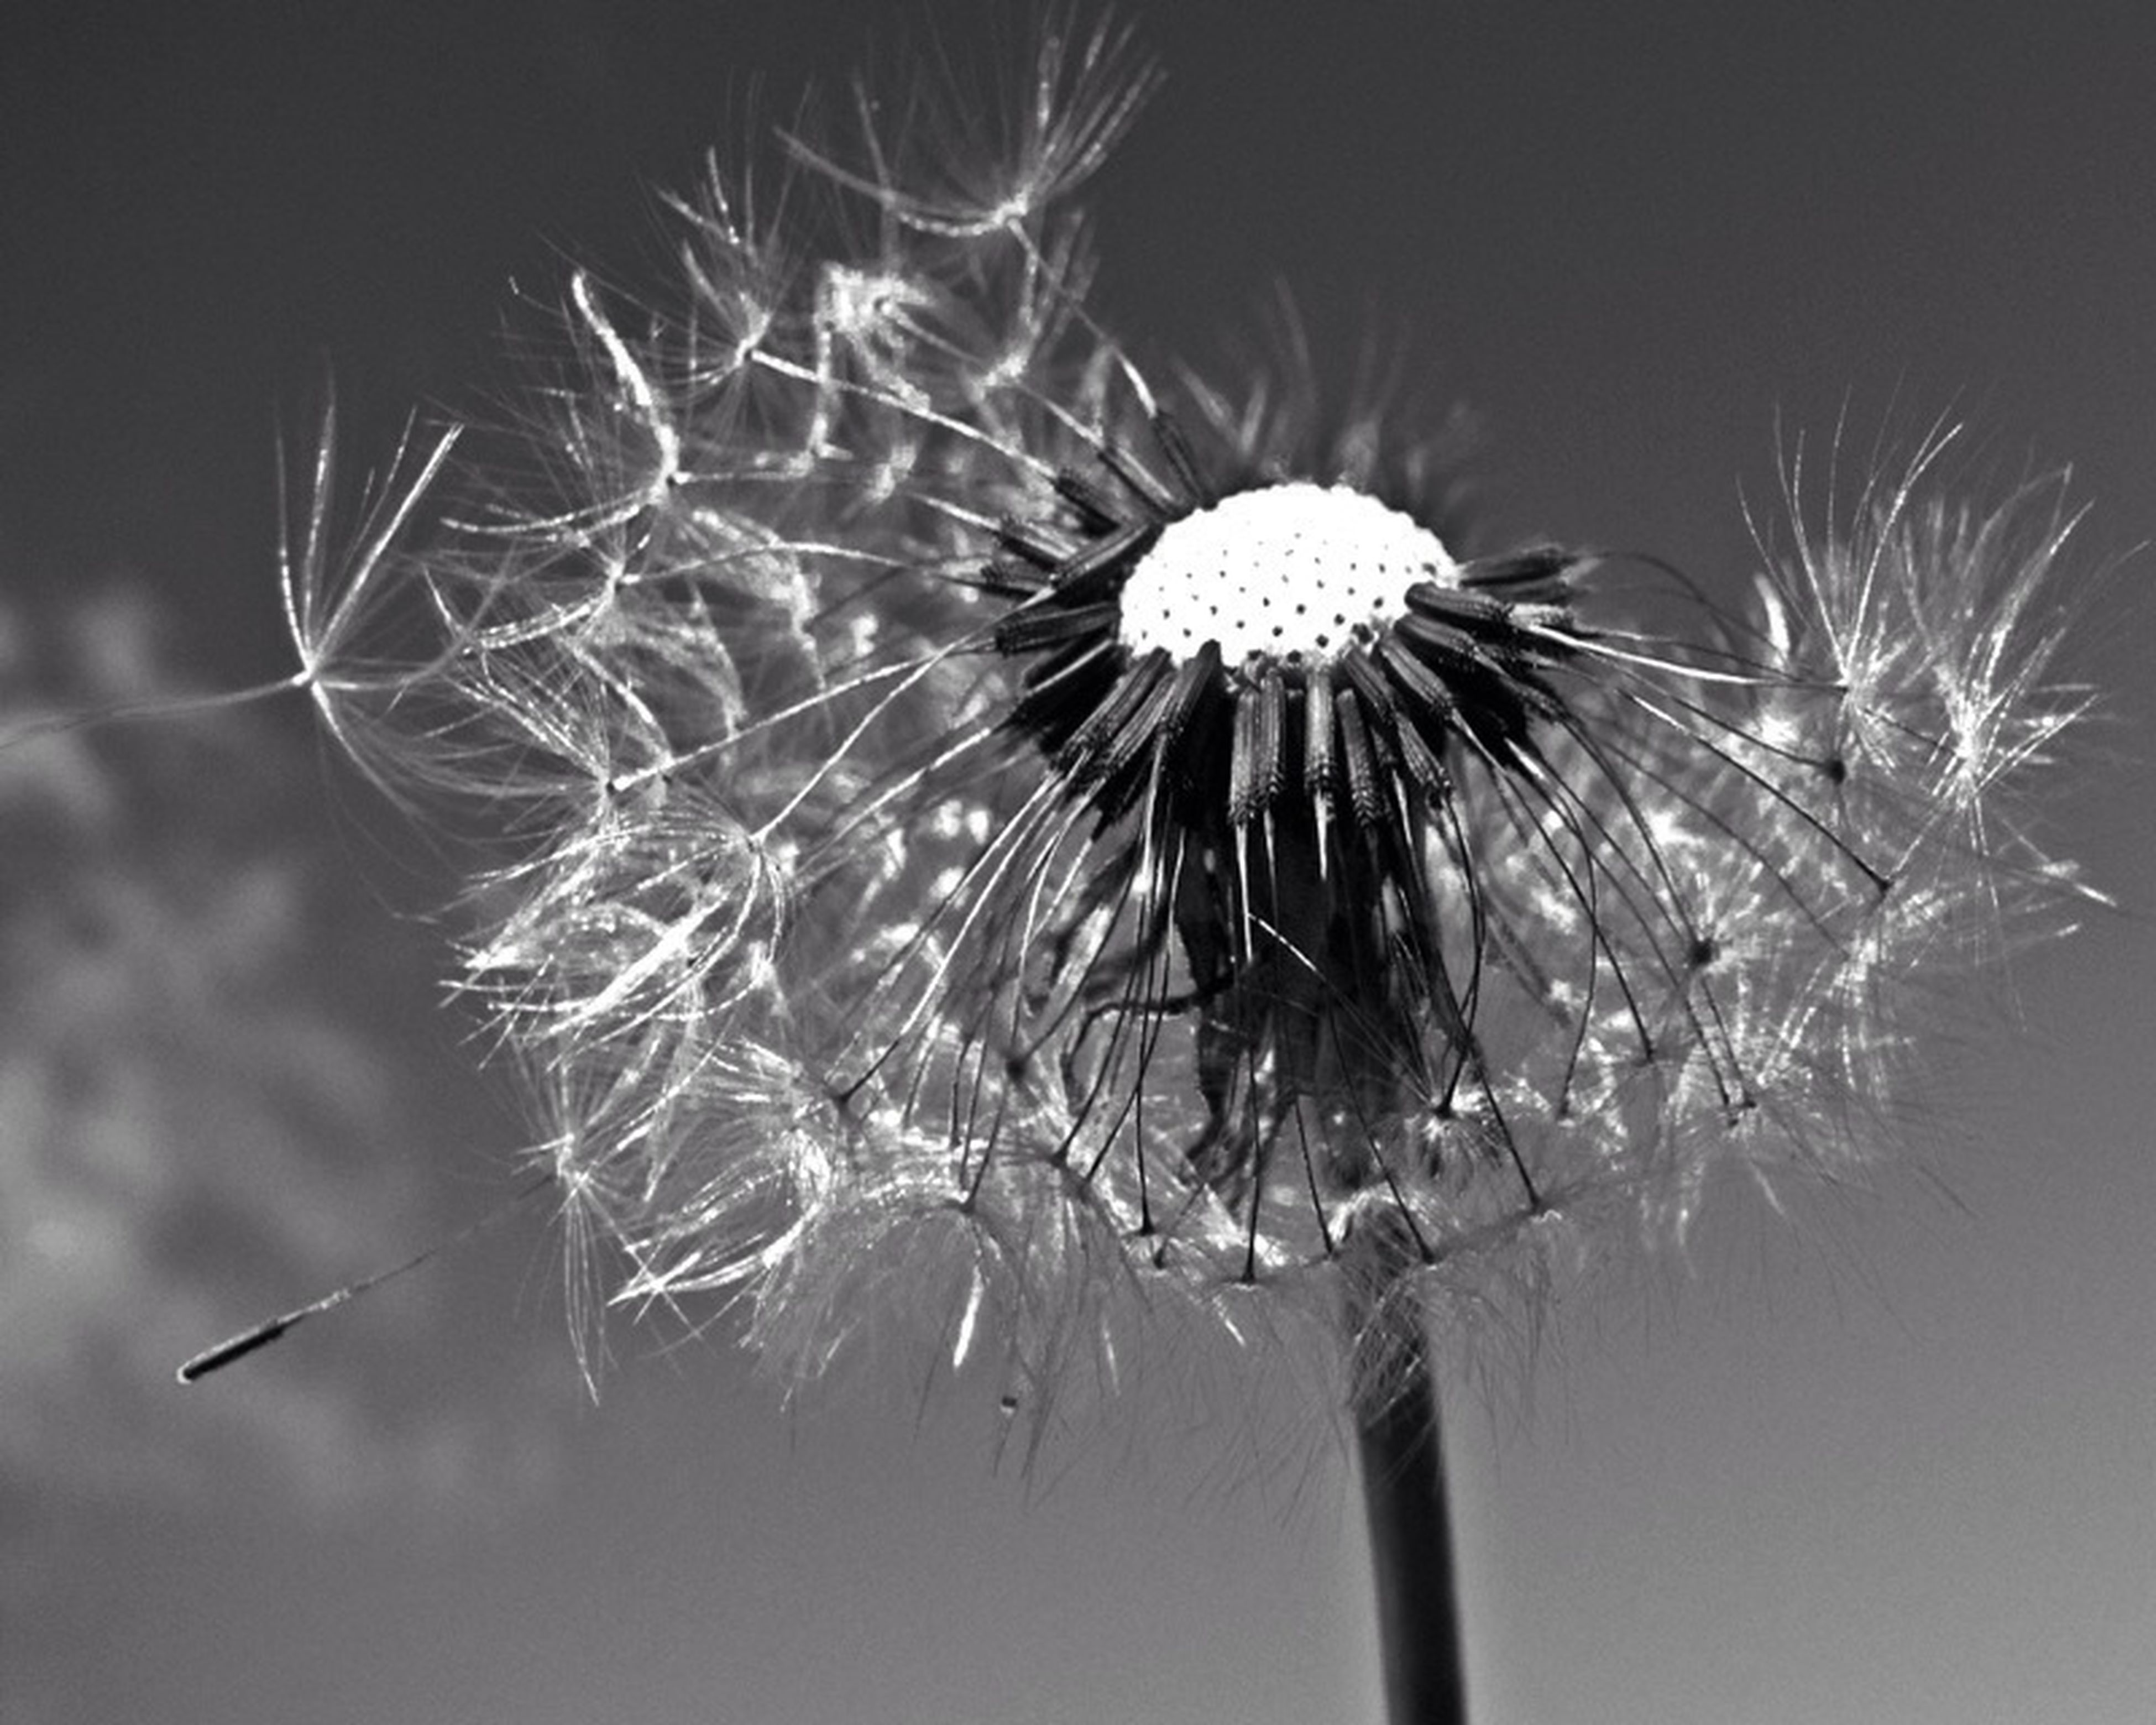 flower, fragility, freshness, flower head, close-up, dandelion, beauty in nature, single flower, growth, nature, focus on foreground, petal, stem, plant, softness, water, no people, drop, outdoors, dandelion seed